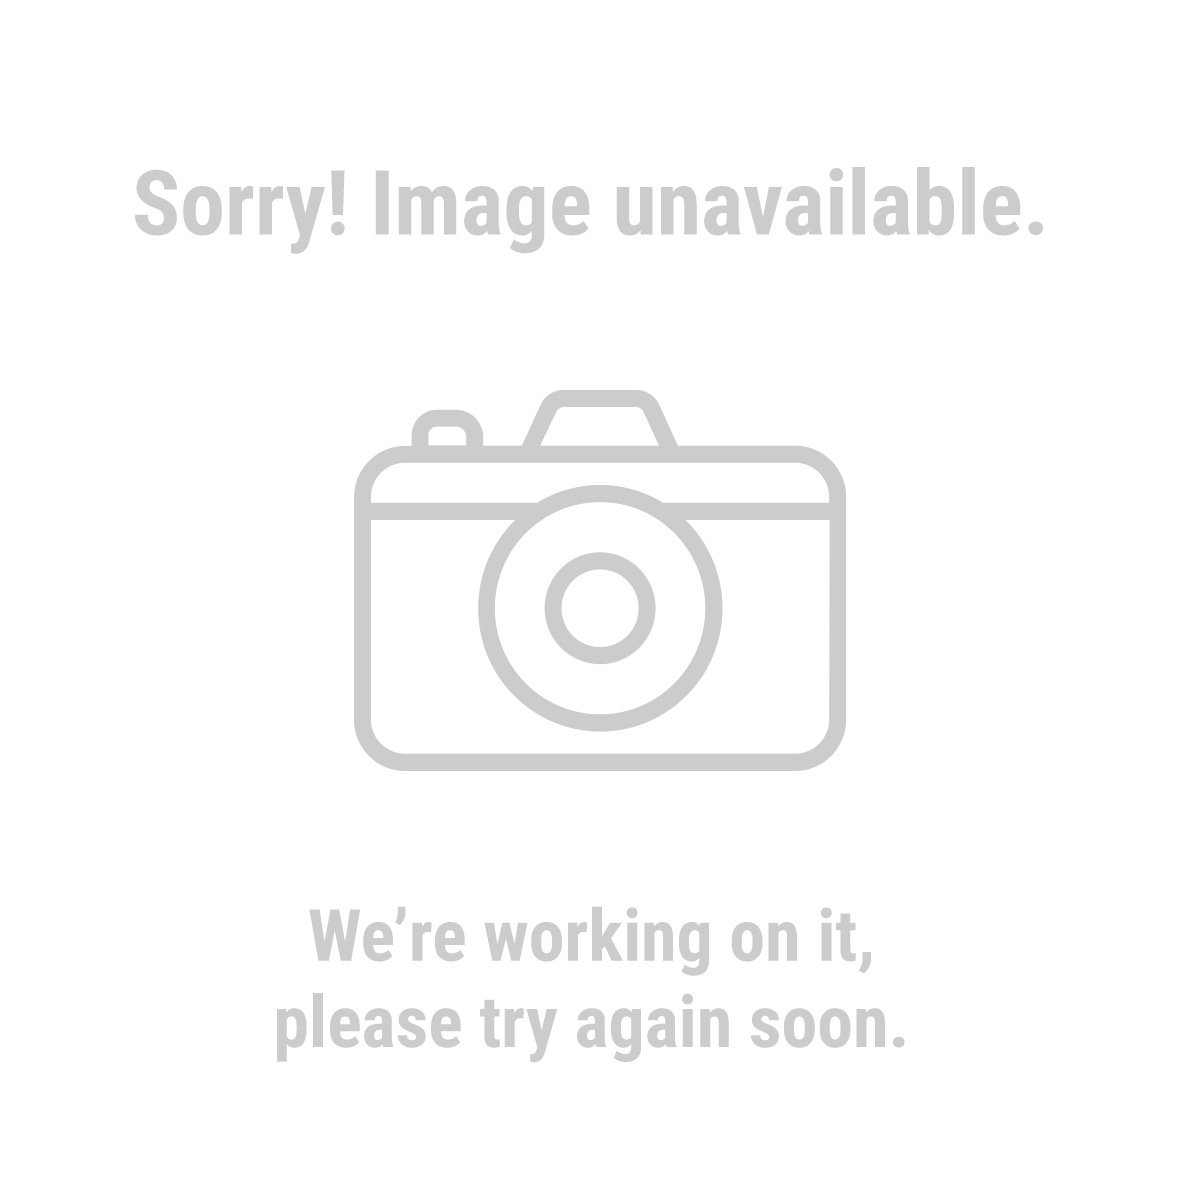 Harbor Freight Woodworking Tools